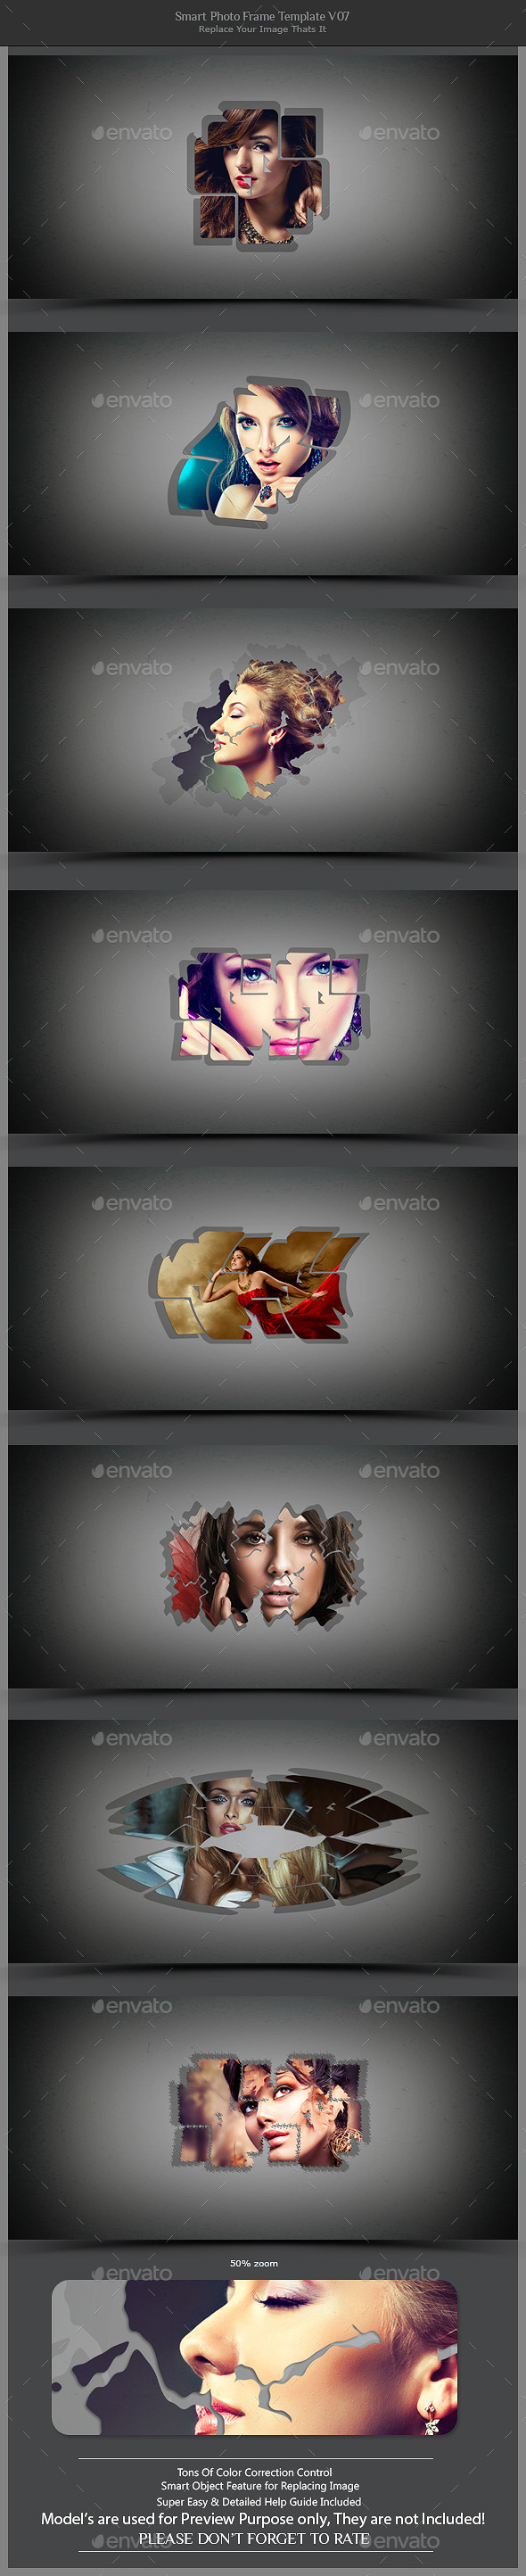 Smart Photo Frame Template V07  - Photo Templates Graphics